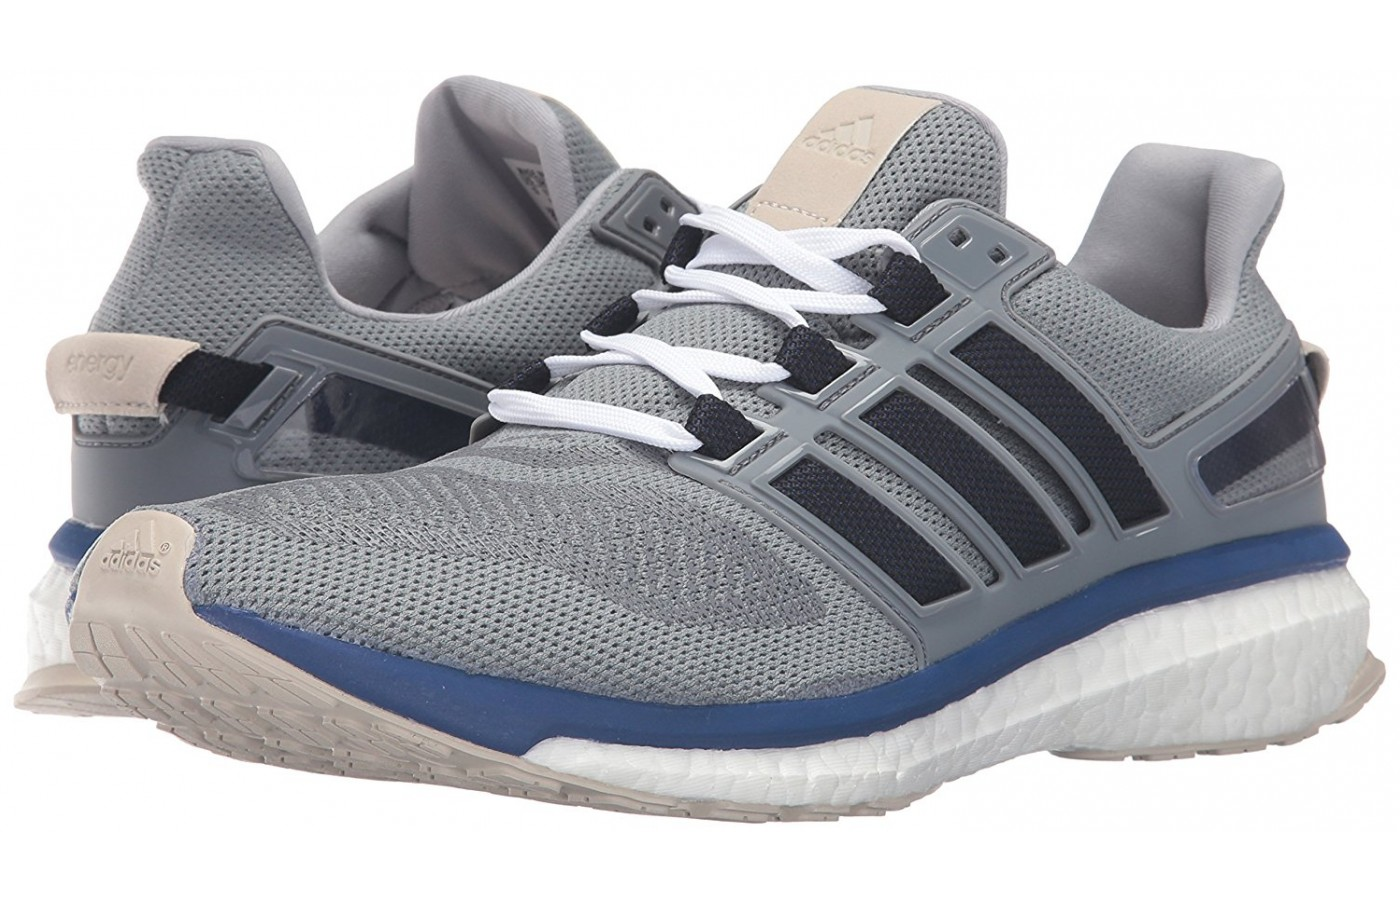 Adidas energy boost 3 pair